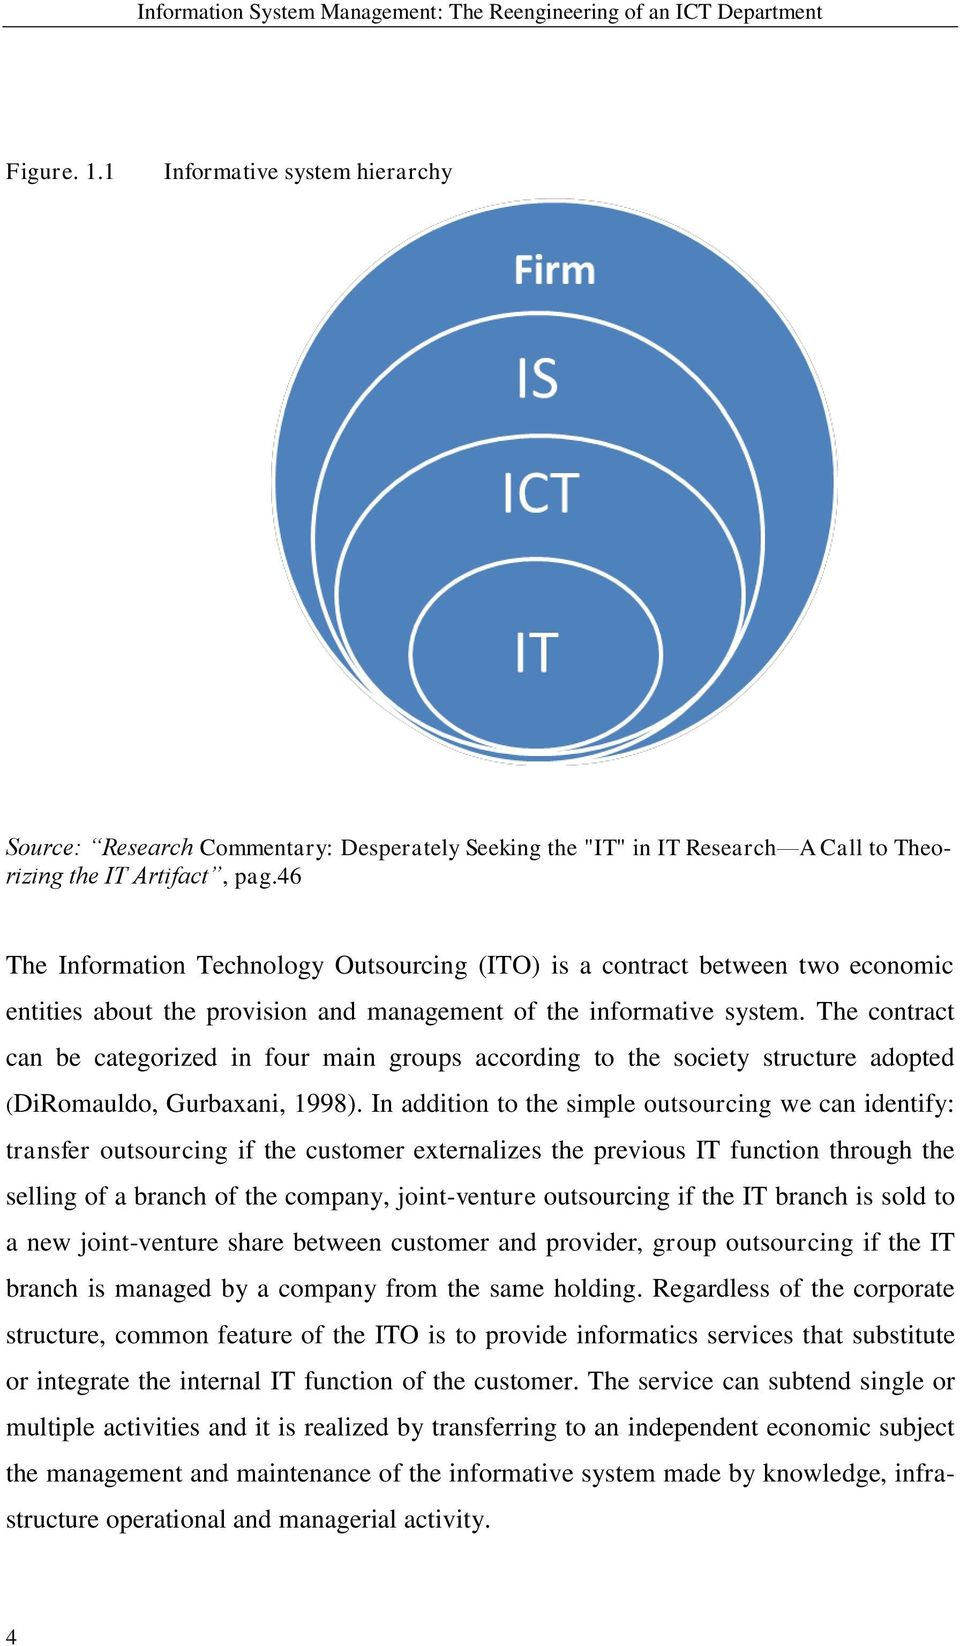 46 The Information Technology Outsourcing (ITO) is a contract between two economic entities about the provision and management of the informative system.